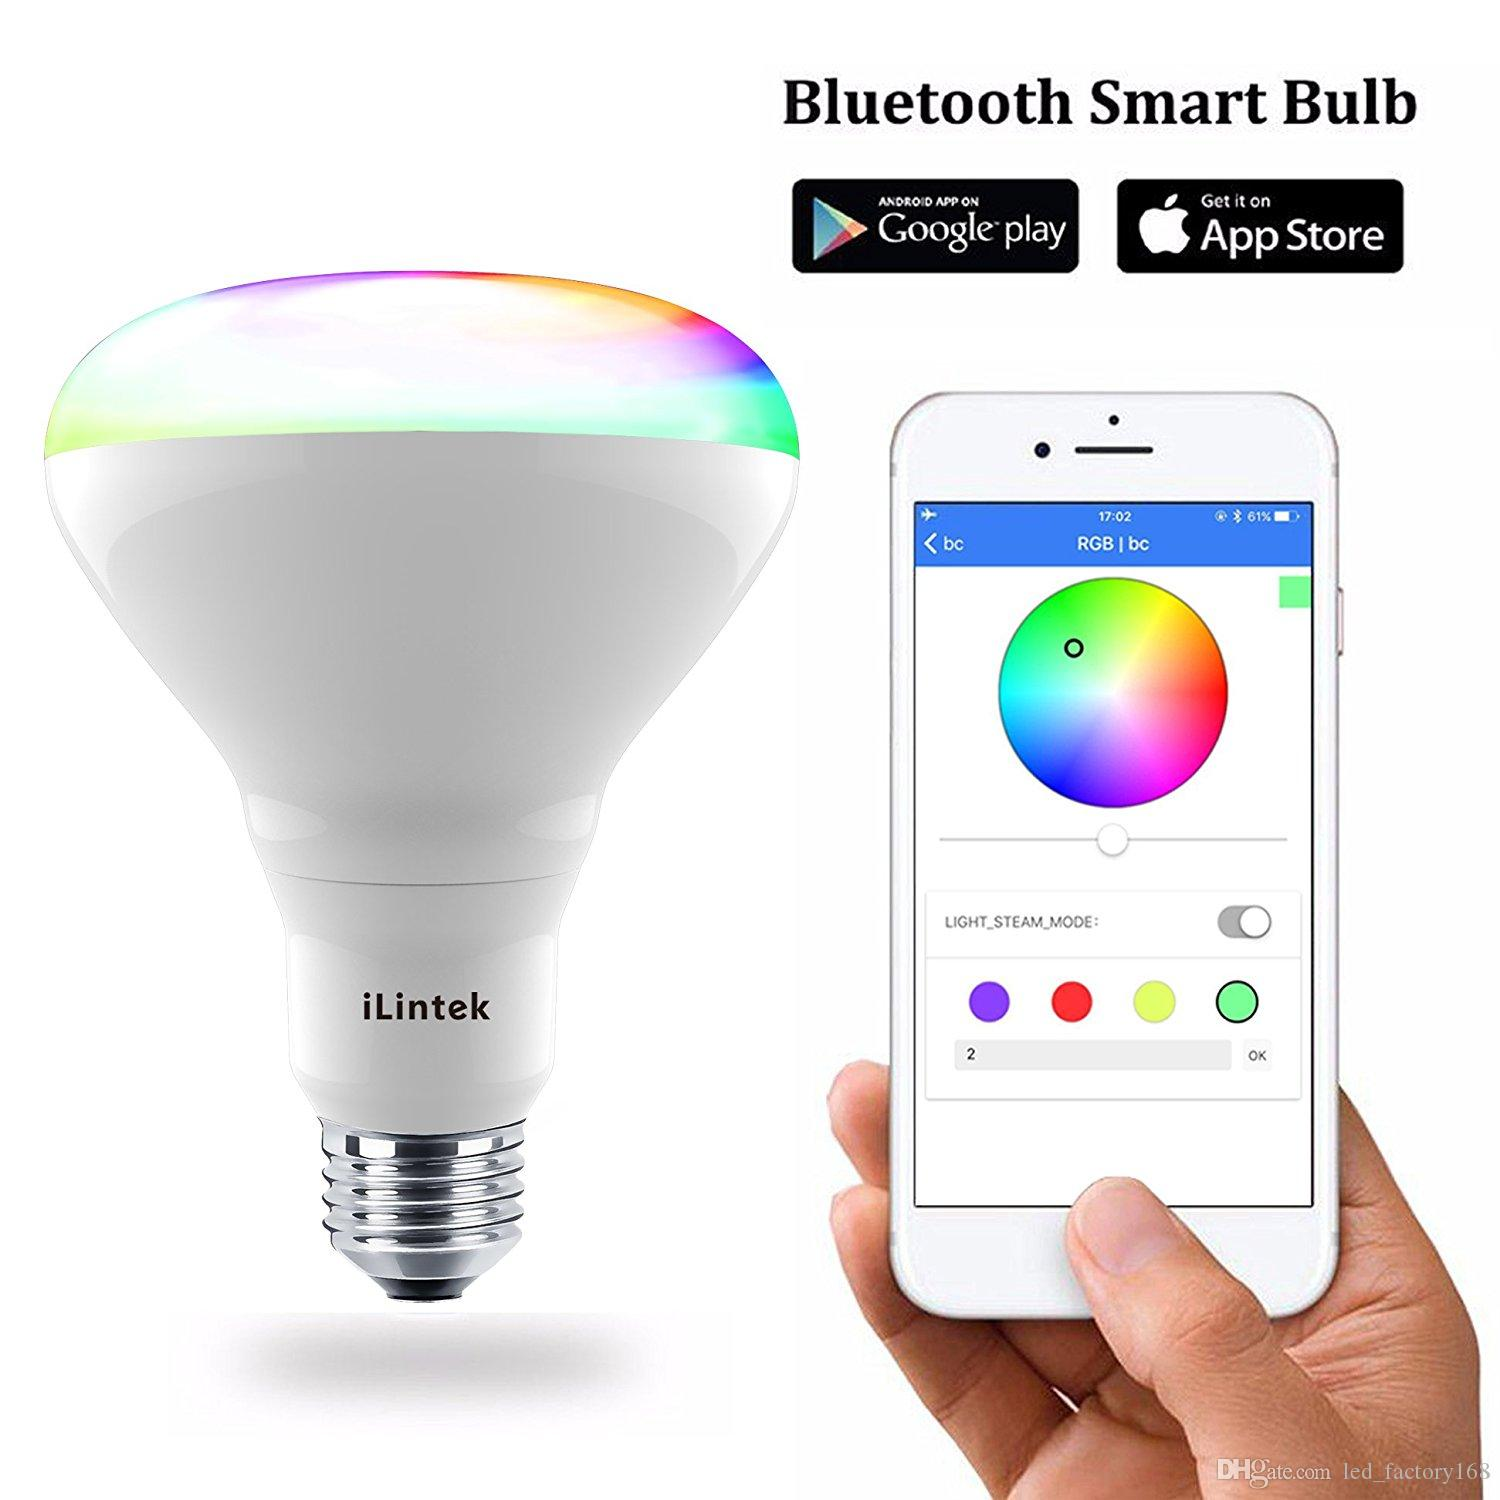 Smart Led Light BulbAdjustable Color Changing Flood BulbMulticolor 9W65W Equivalent Dimmable Sunrise Sunset Sleeping Party Musi Bulbs Cfl